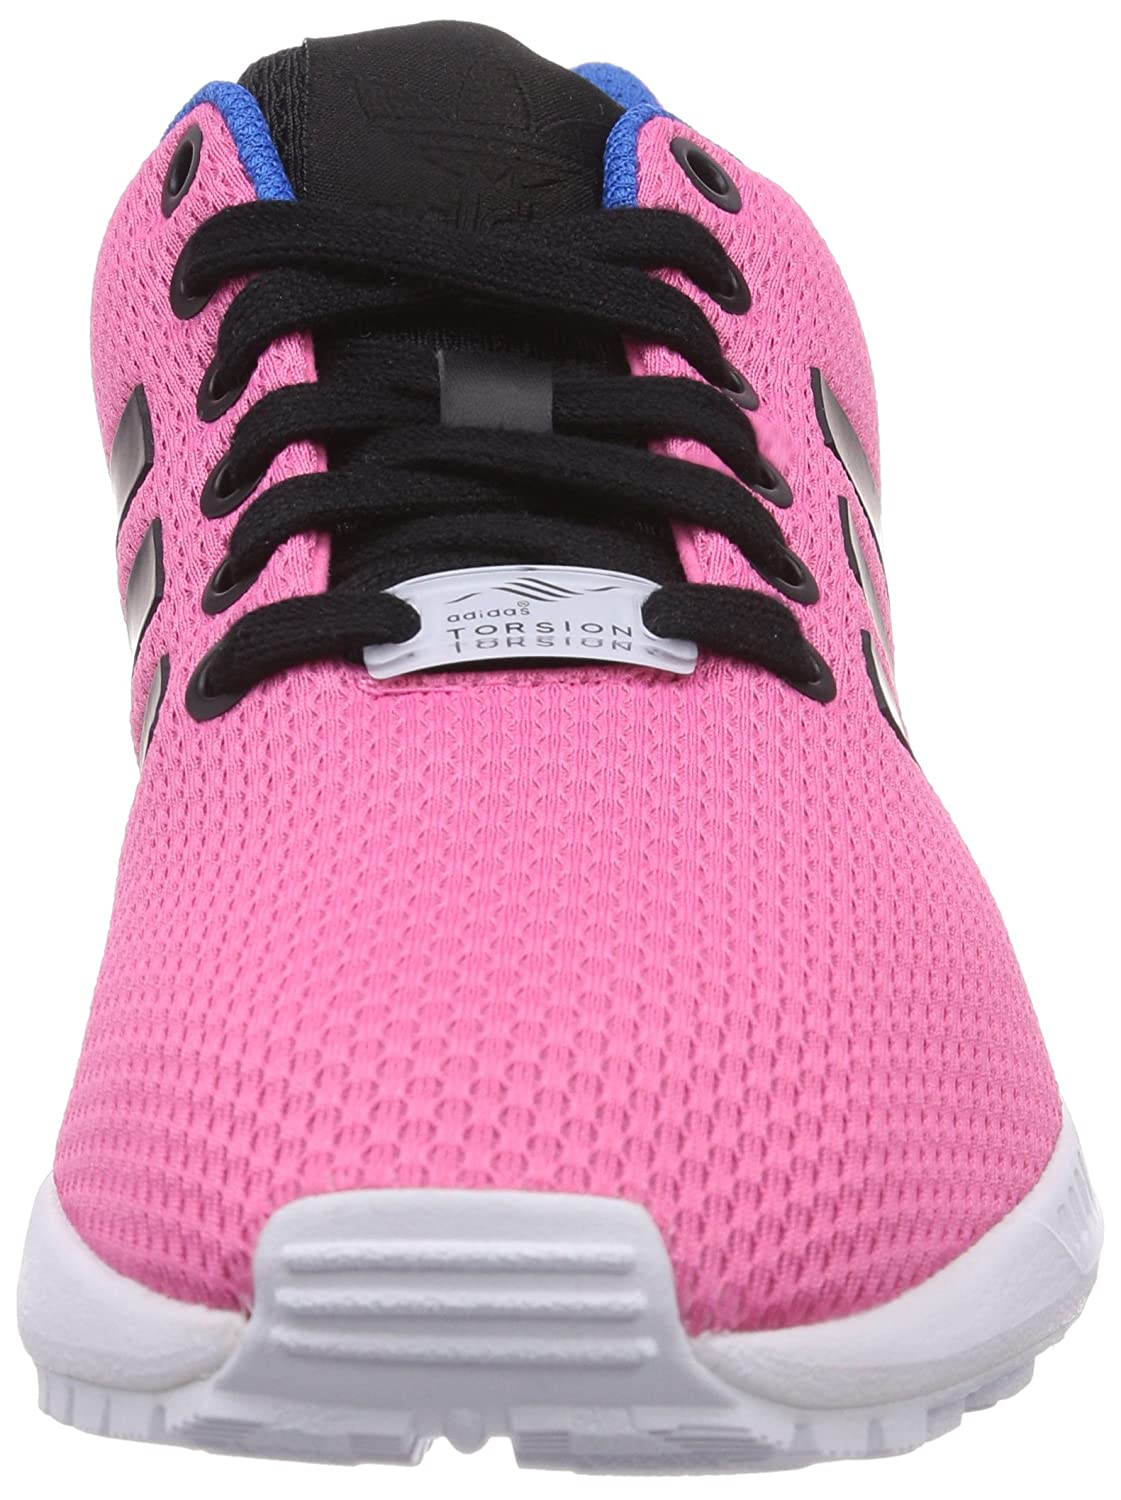 ecc3455f9 adidas Originals Men s Zx Flux Semi Solar Pink